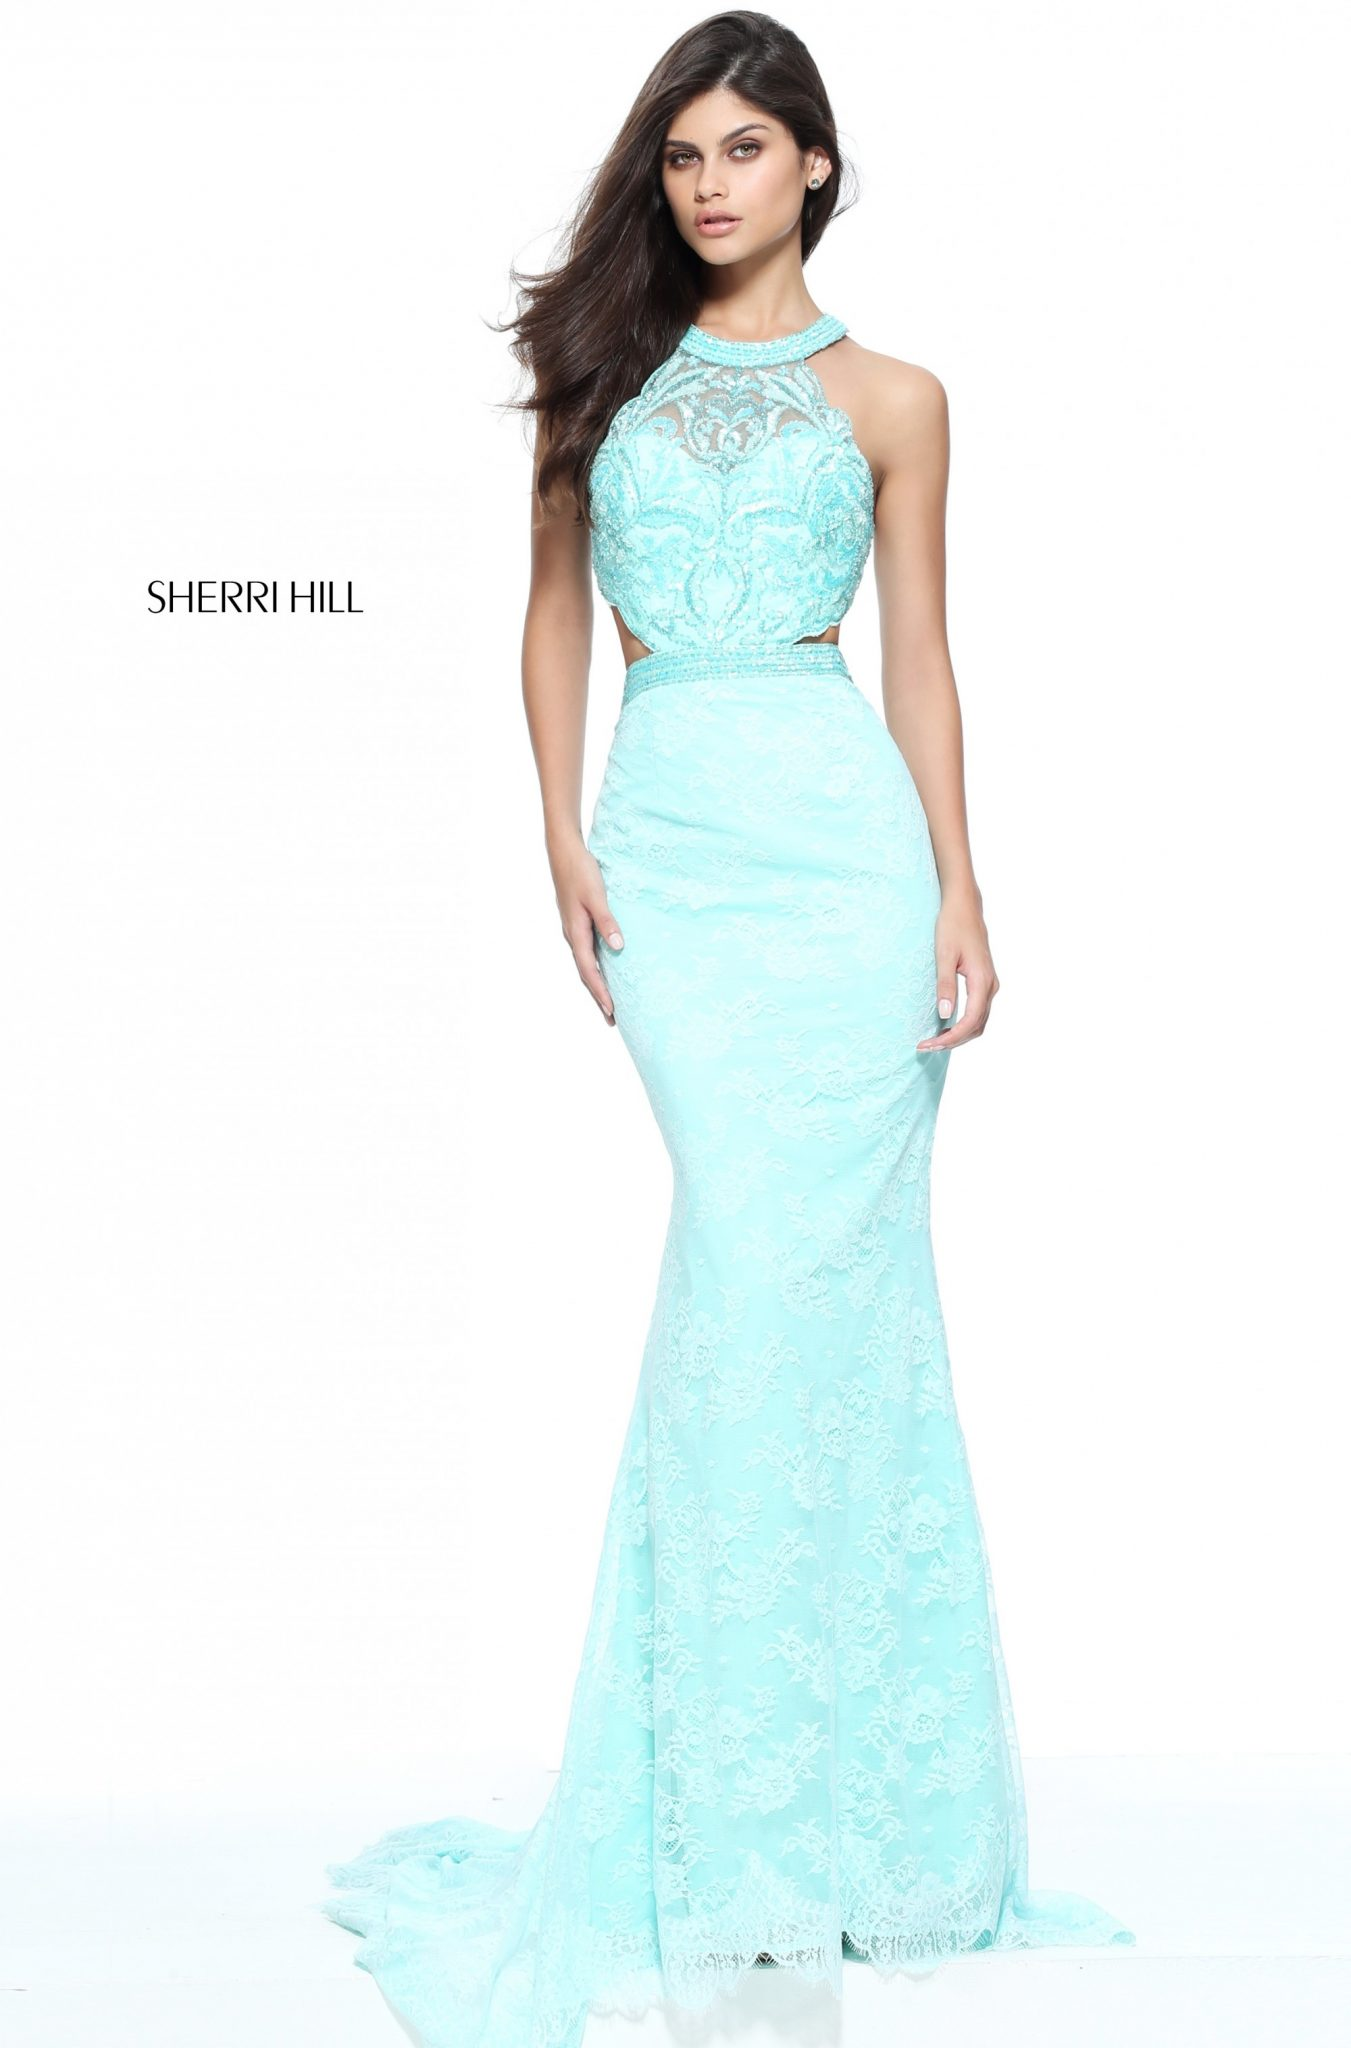 Sherri Hill Archives | Page 3 of 4 | Dress To Go